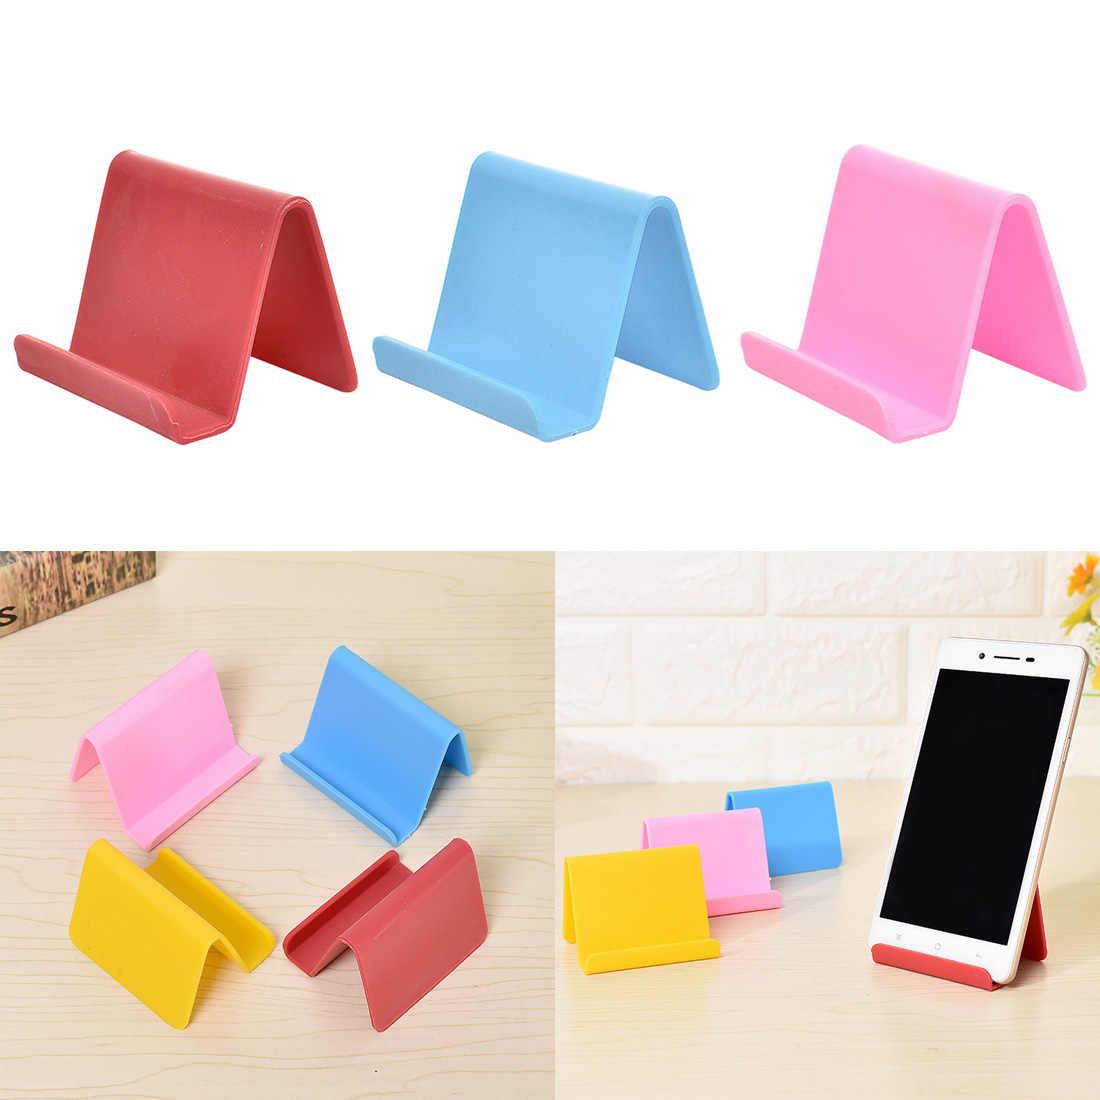 Candy Mini Portable Fixed Holder Mobile Phone Holder   Home Supplies Organizador Movable Shelf Organizer Holder